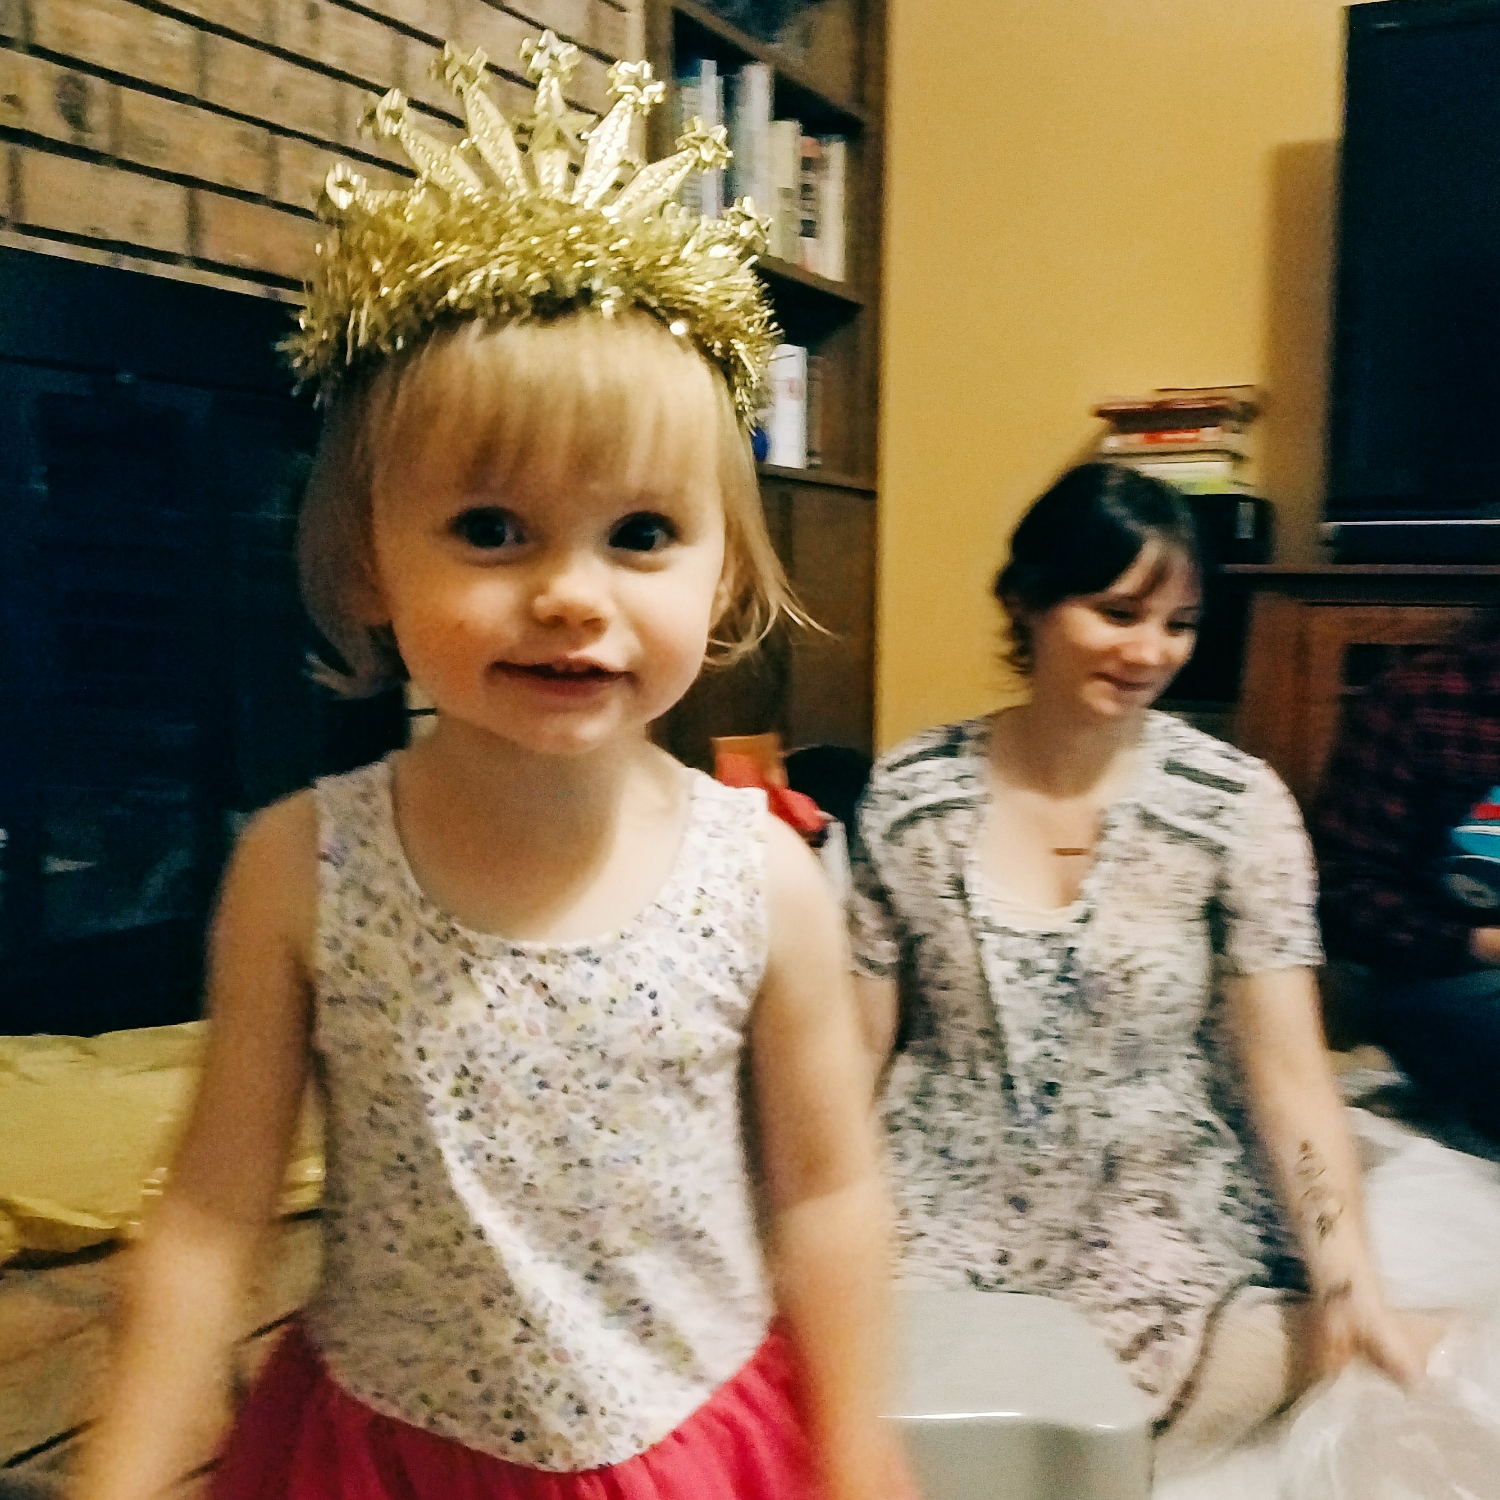 The great photography challenge:taking a photo of a two year old on her birthday in low light